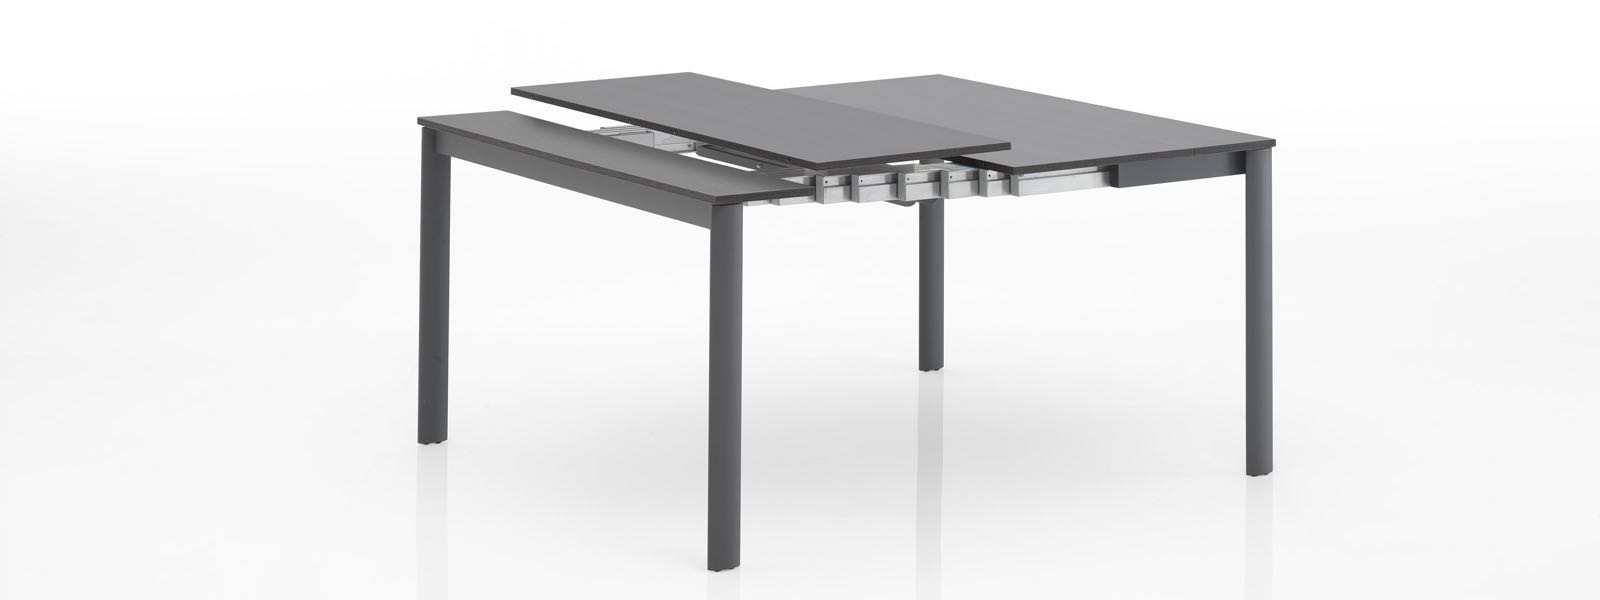 Etico Plus Table Bontempi